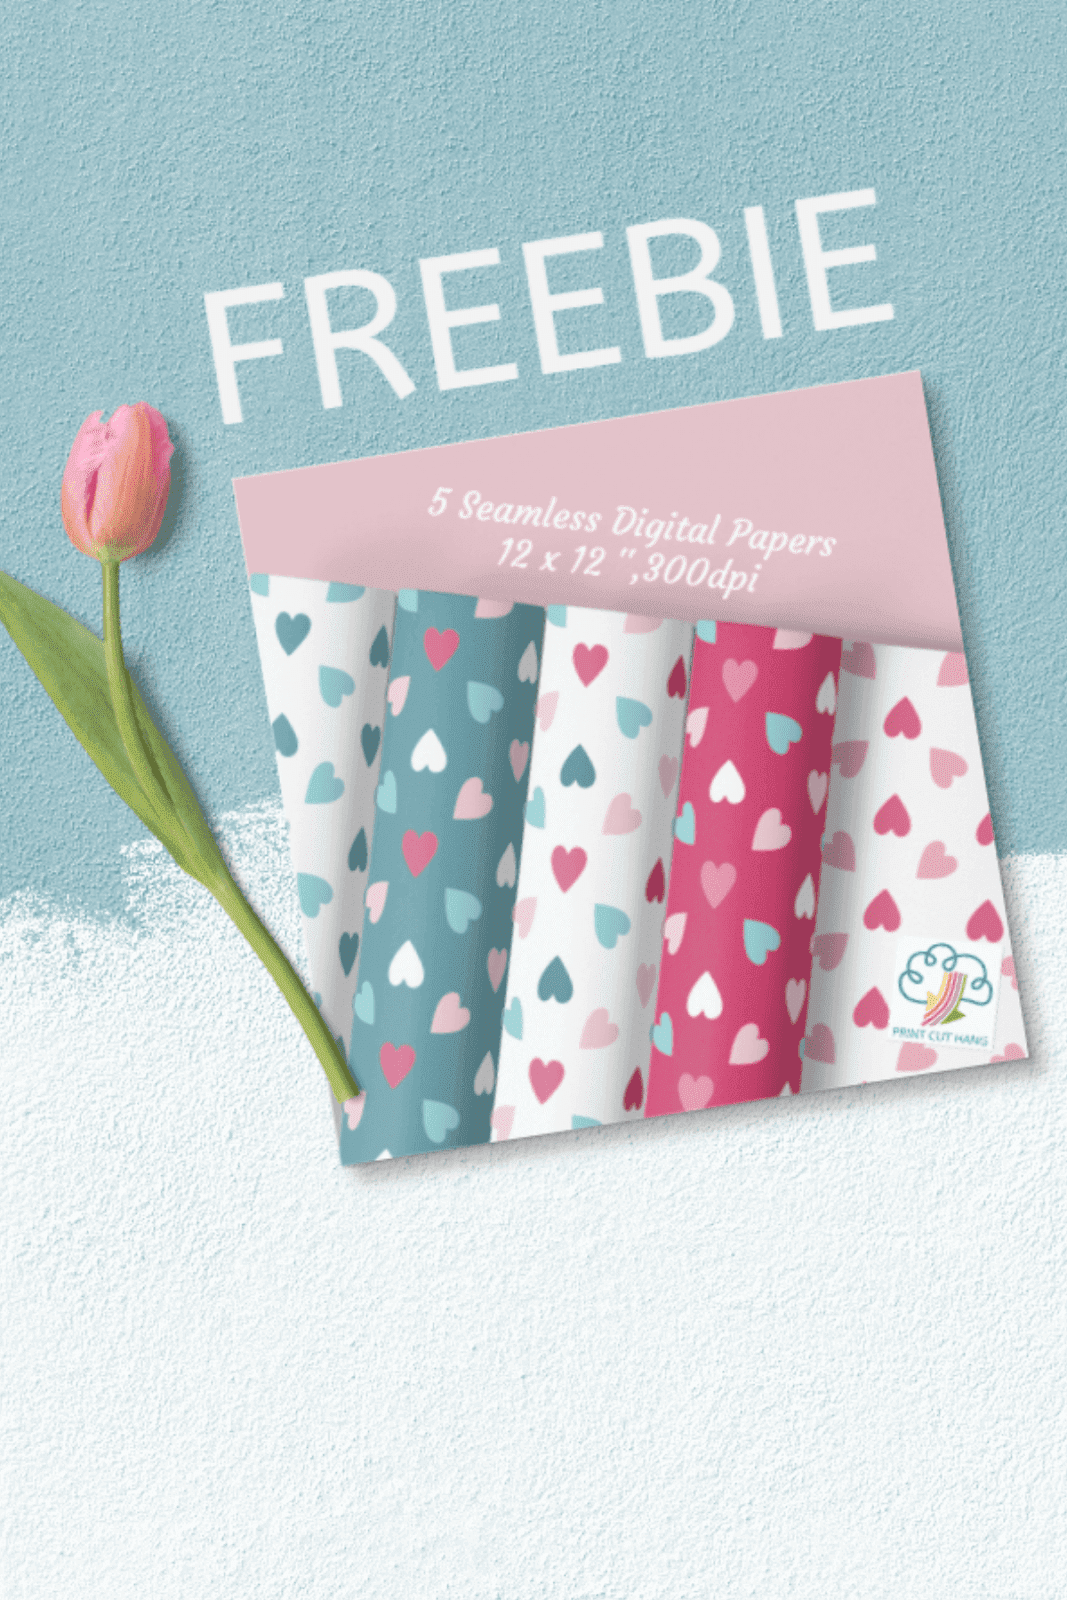 FREE PAPERS WITH HEARTS